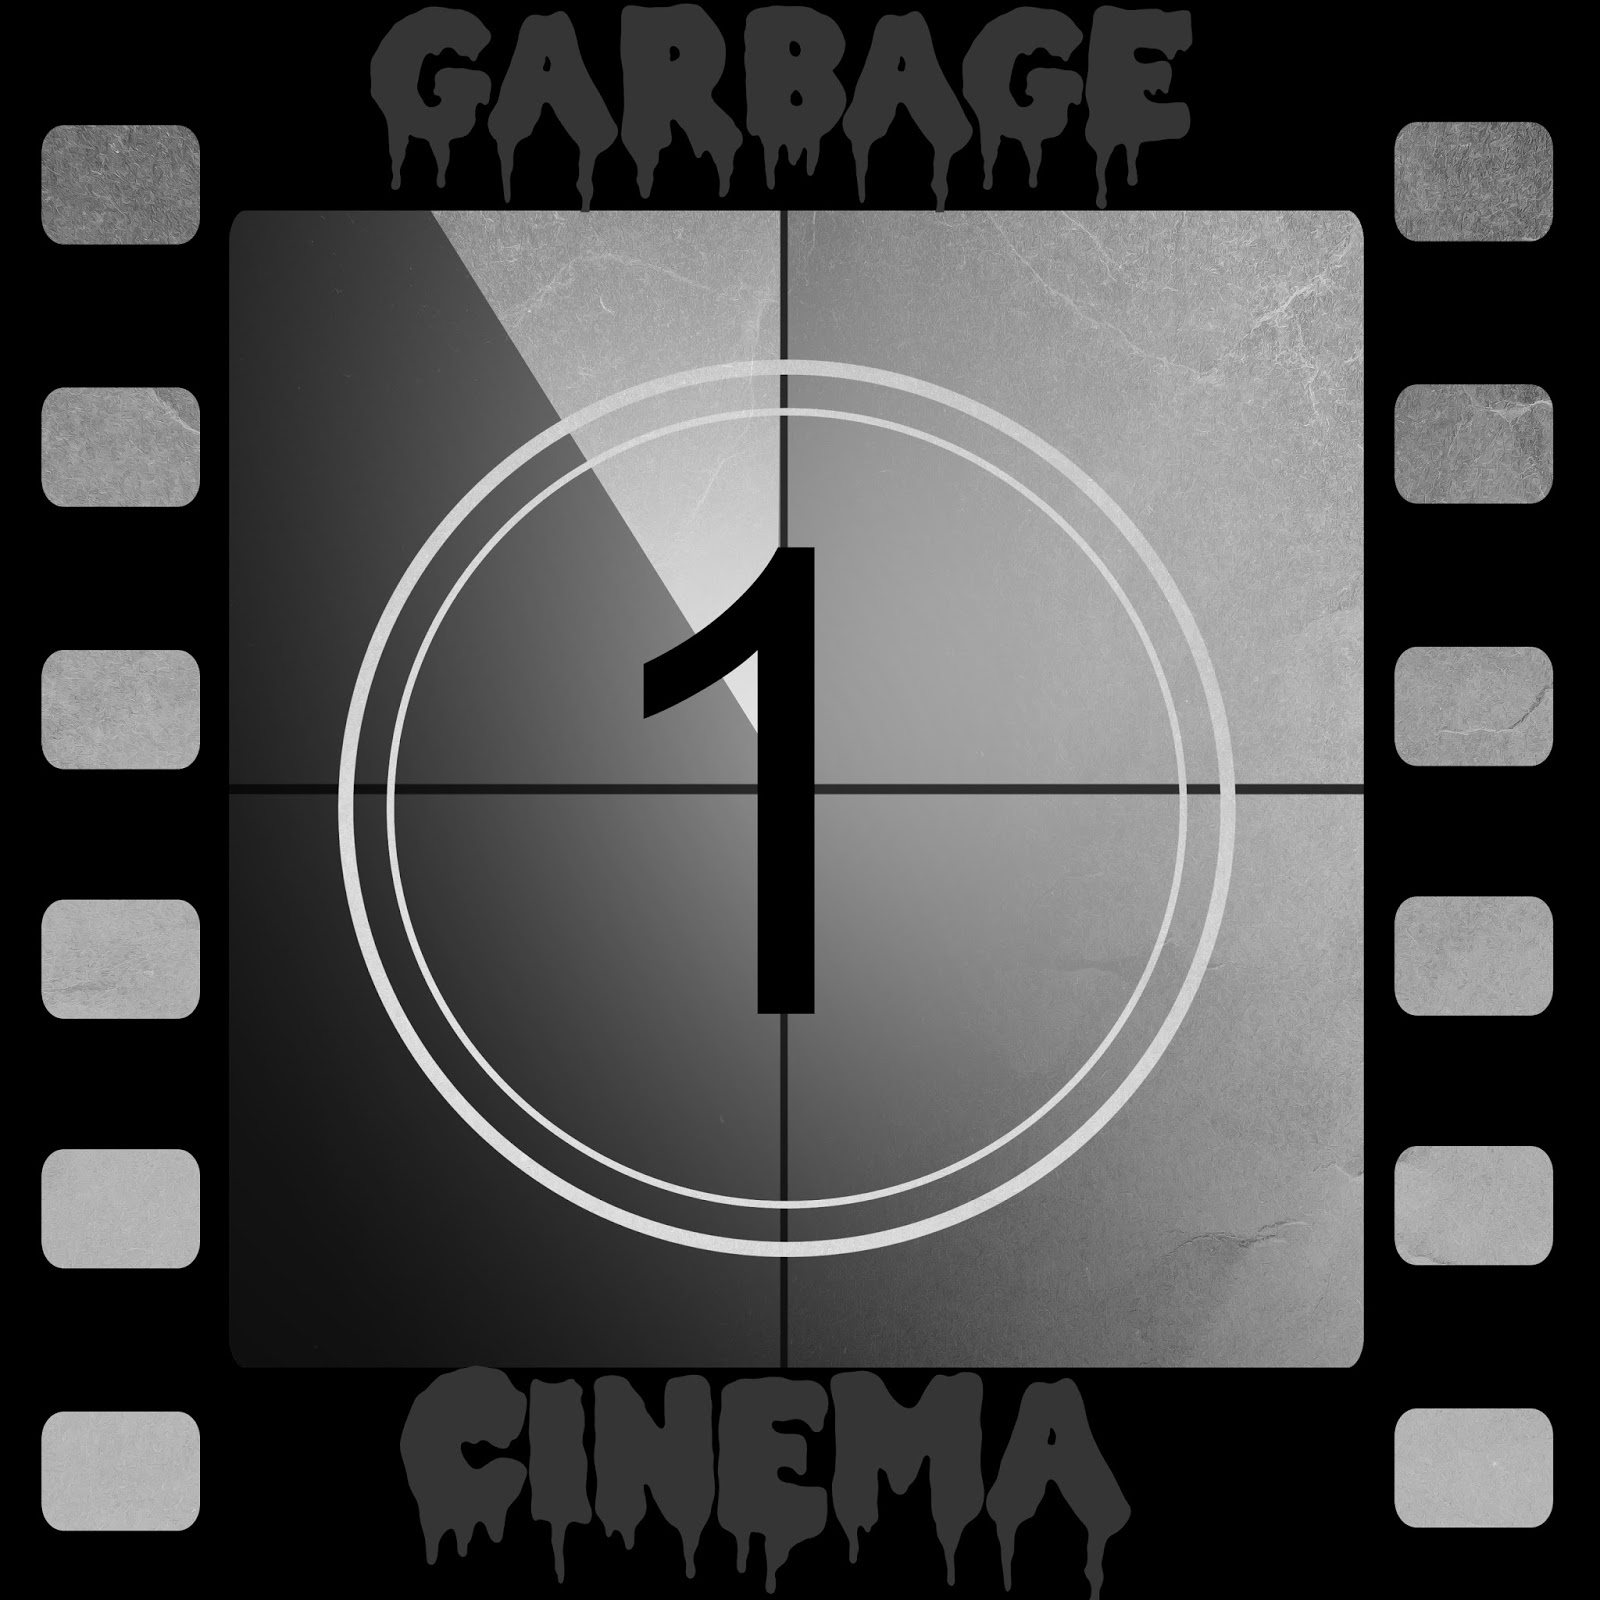 Garbage Cinema 07fee96c39ef2